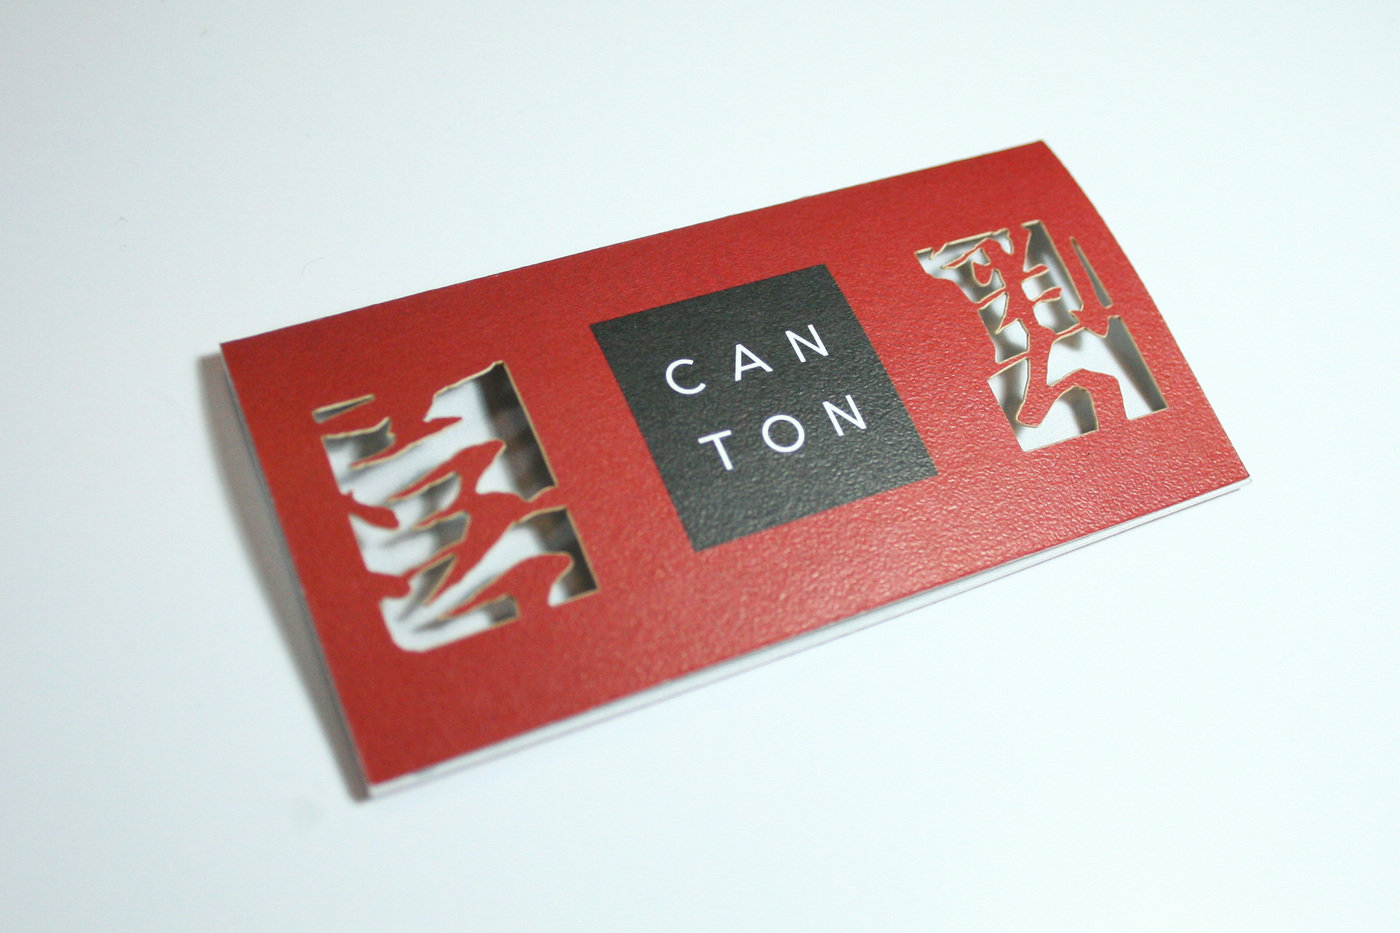 Canton business card by pedro tun at coroflot business card design canton chinese restaurant colourmoves